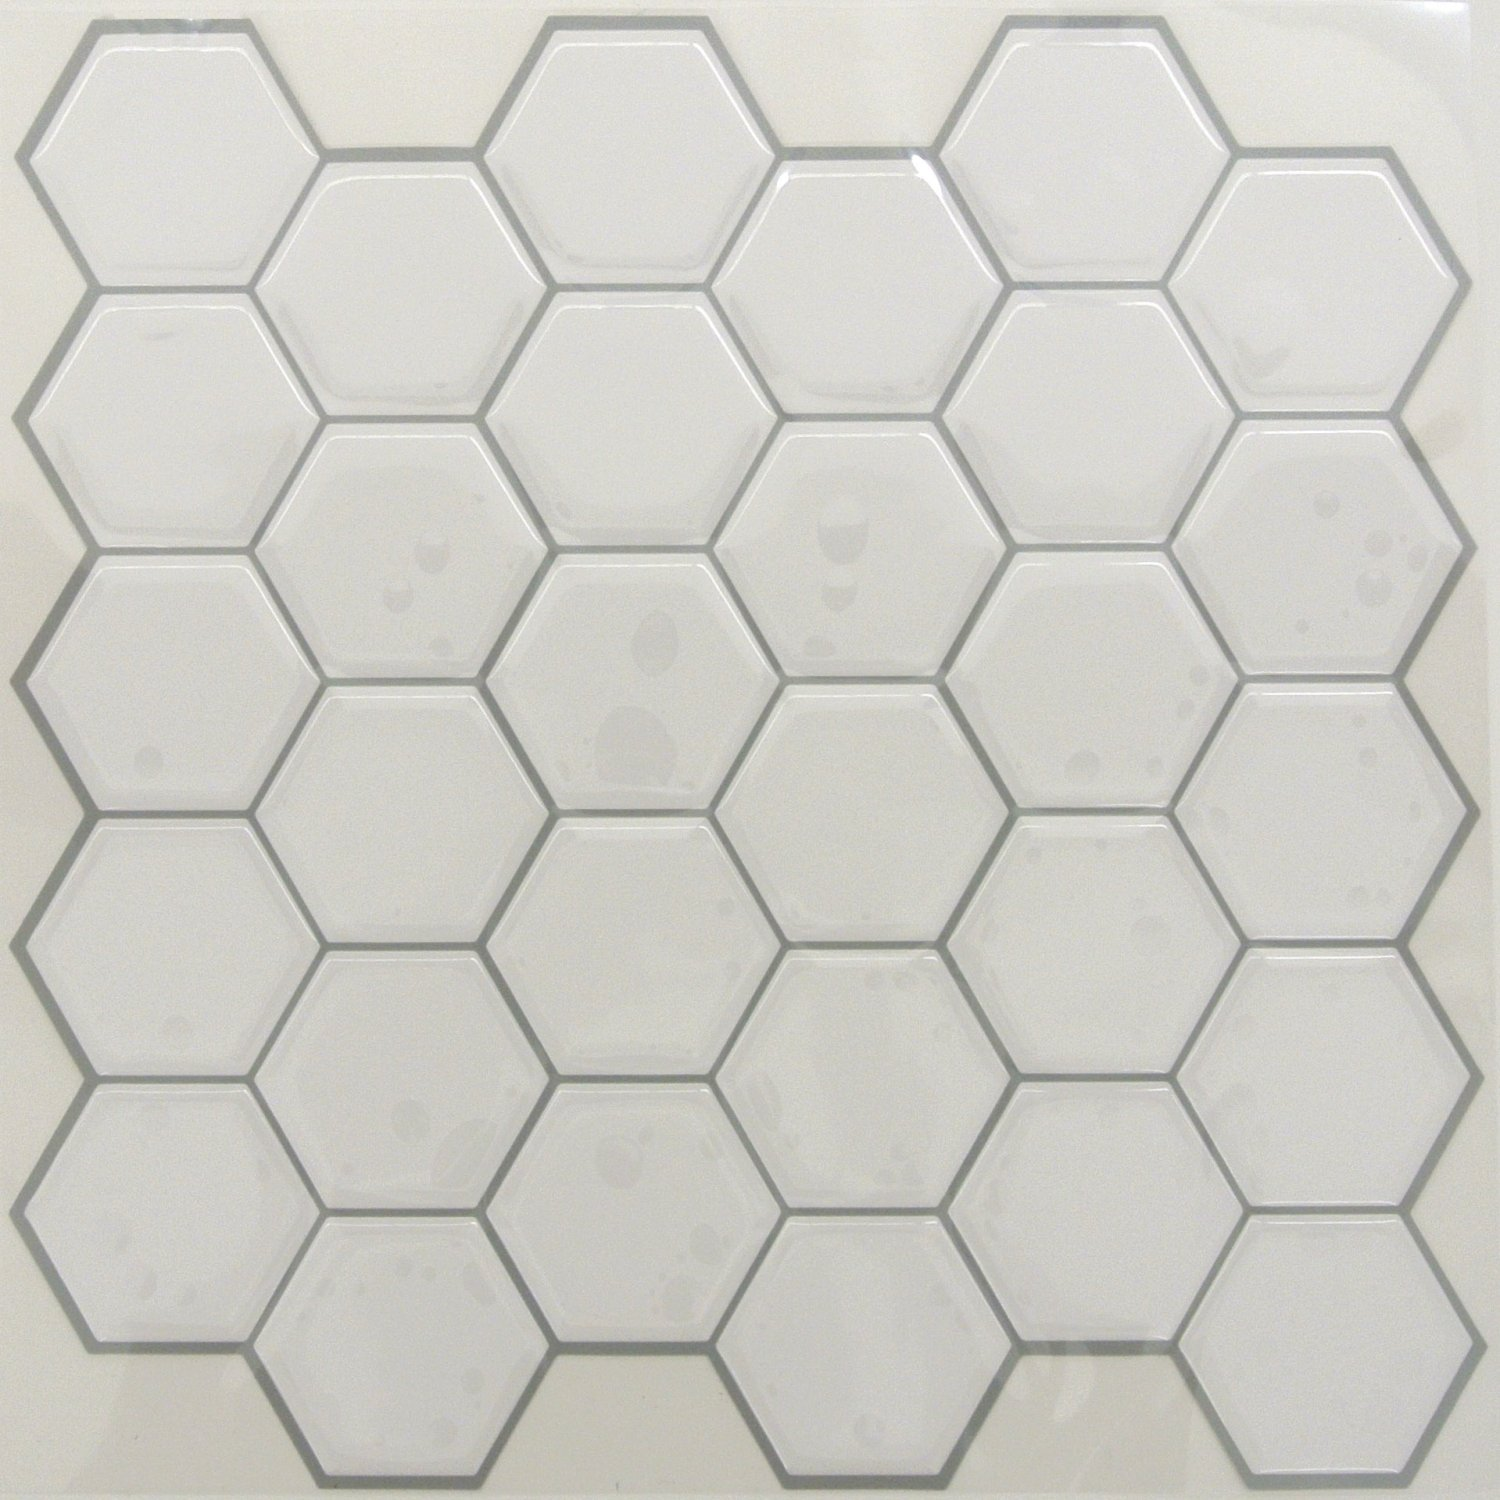 RoomMates StickTILES Pearl Hexagon Peel and Stick Backsplash Tiles - 4 Per Pack by RoomMates